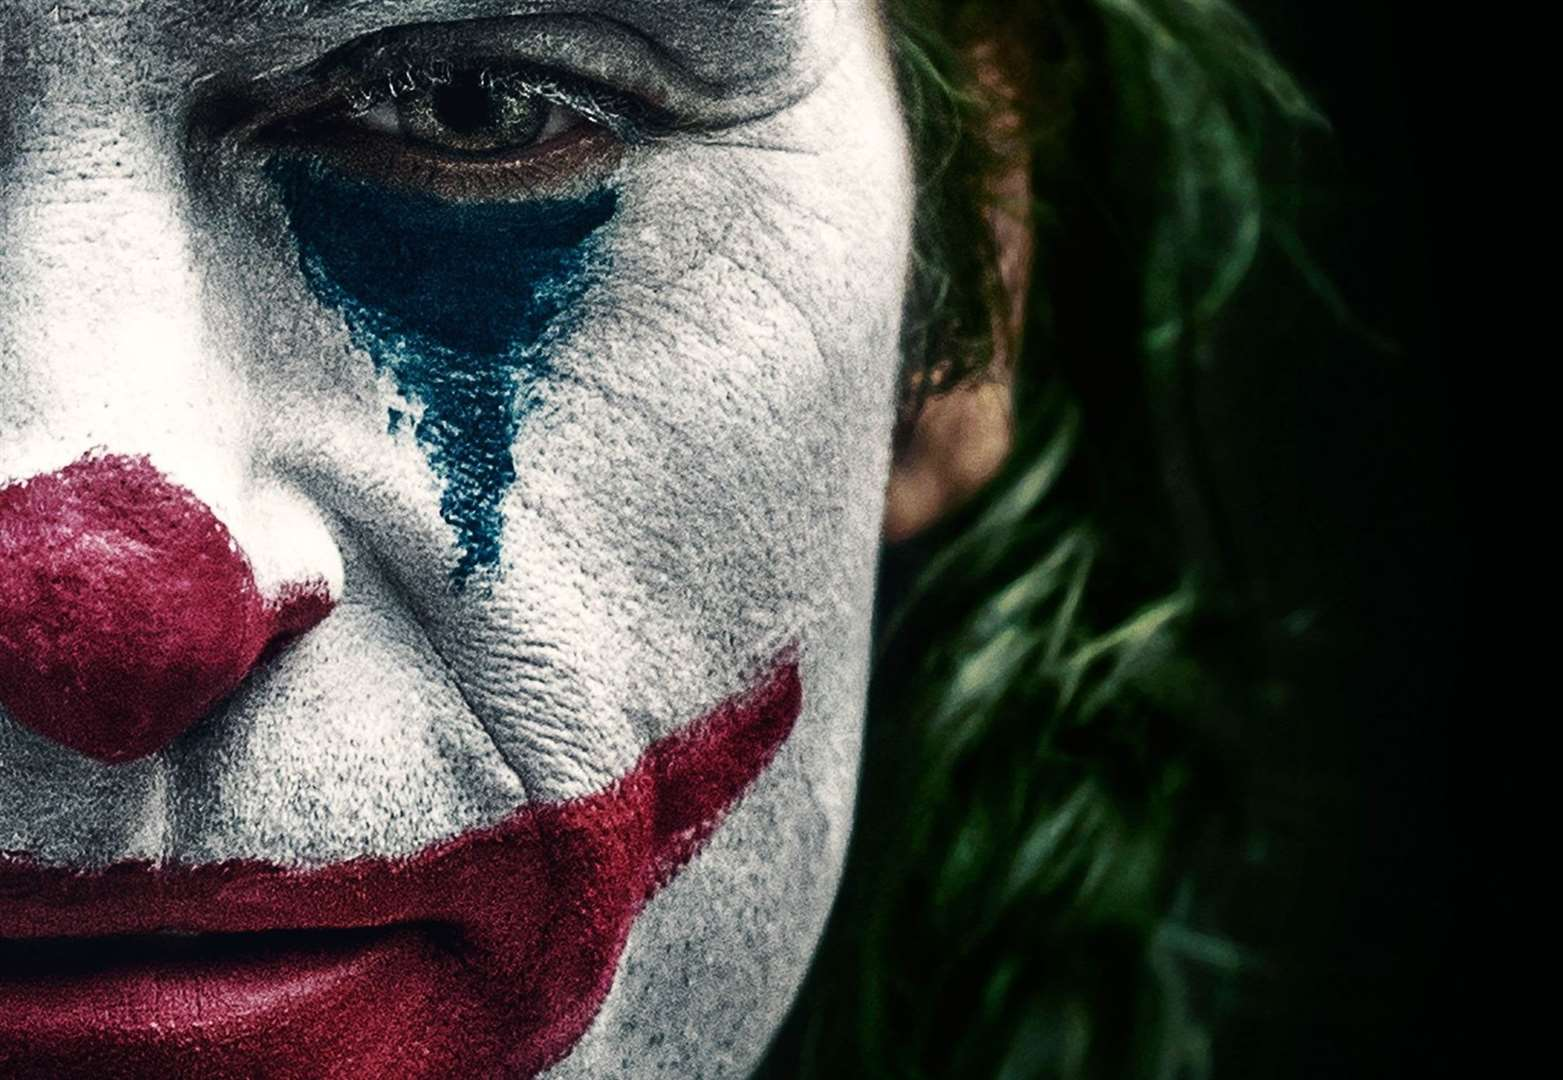 MOVIE REVIEW: Joker (15)